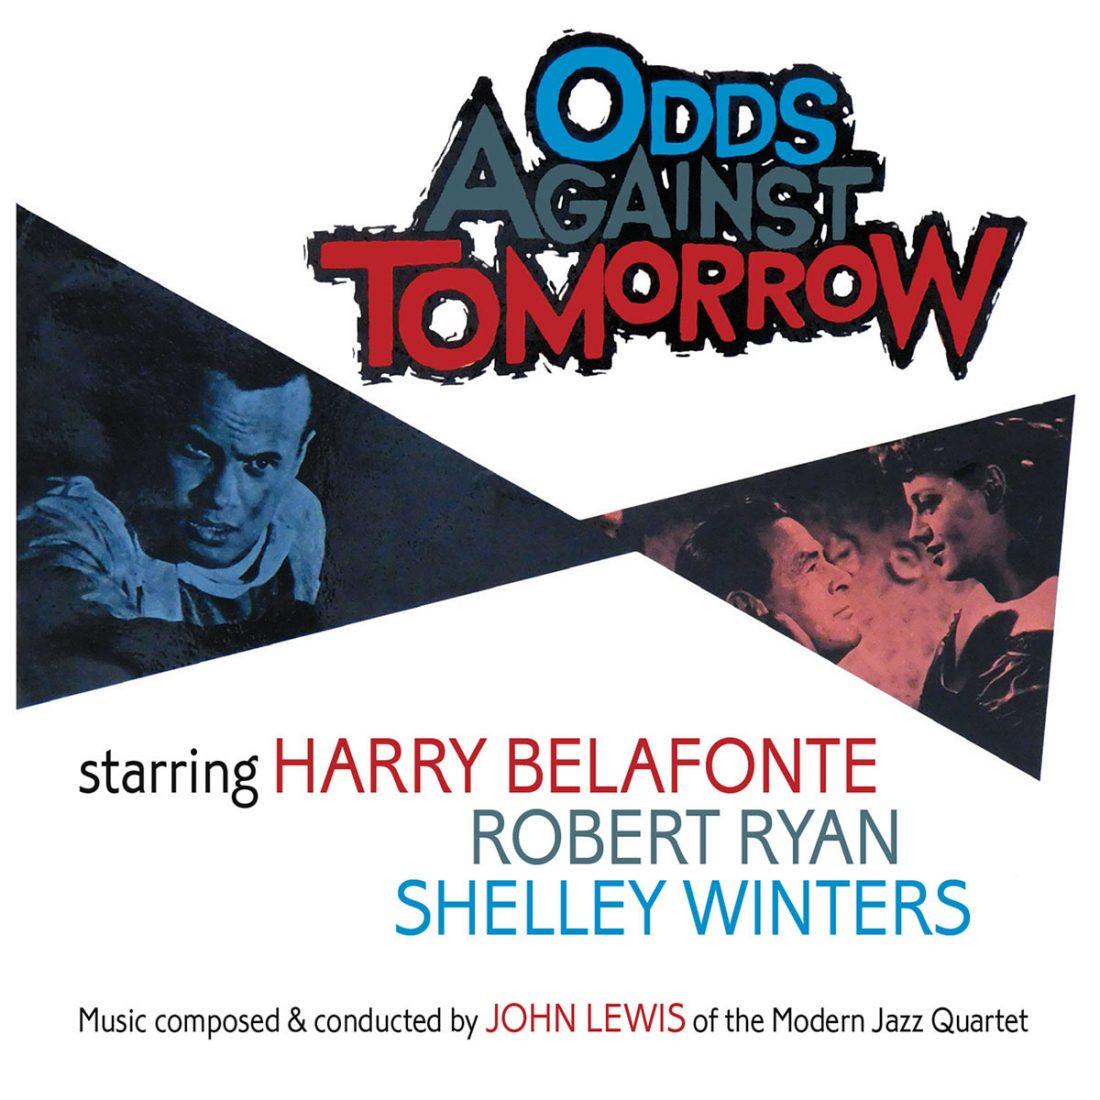 Odds Against Tomorrow Original Soundtrack by John Lewis